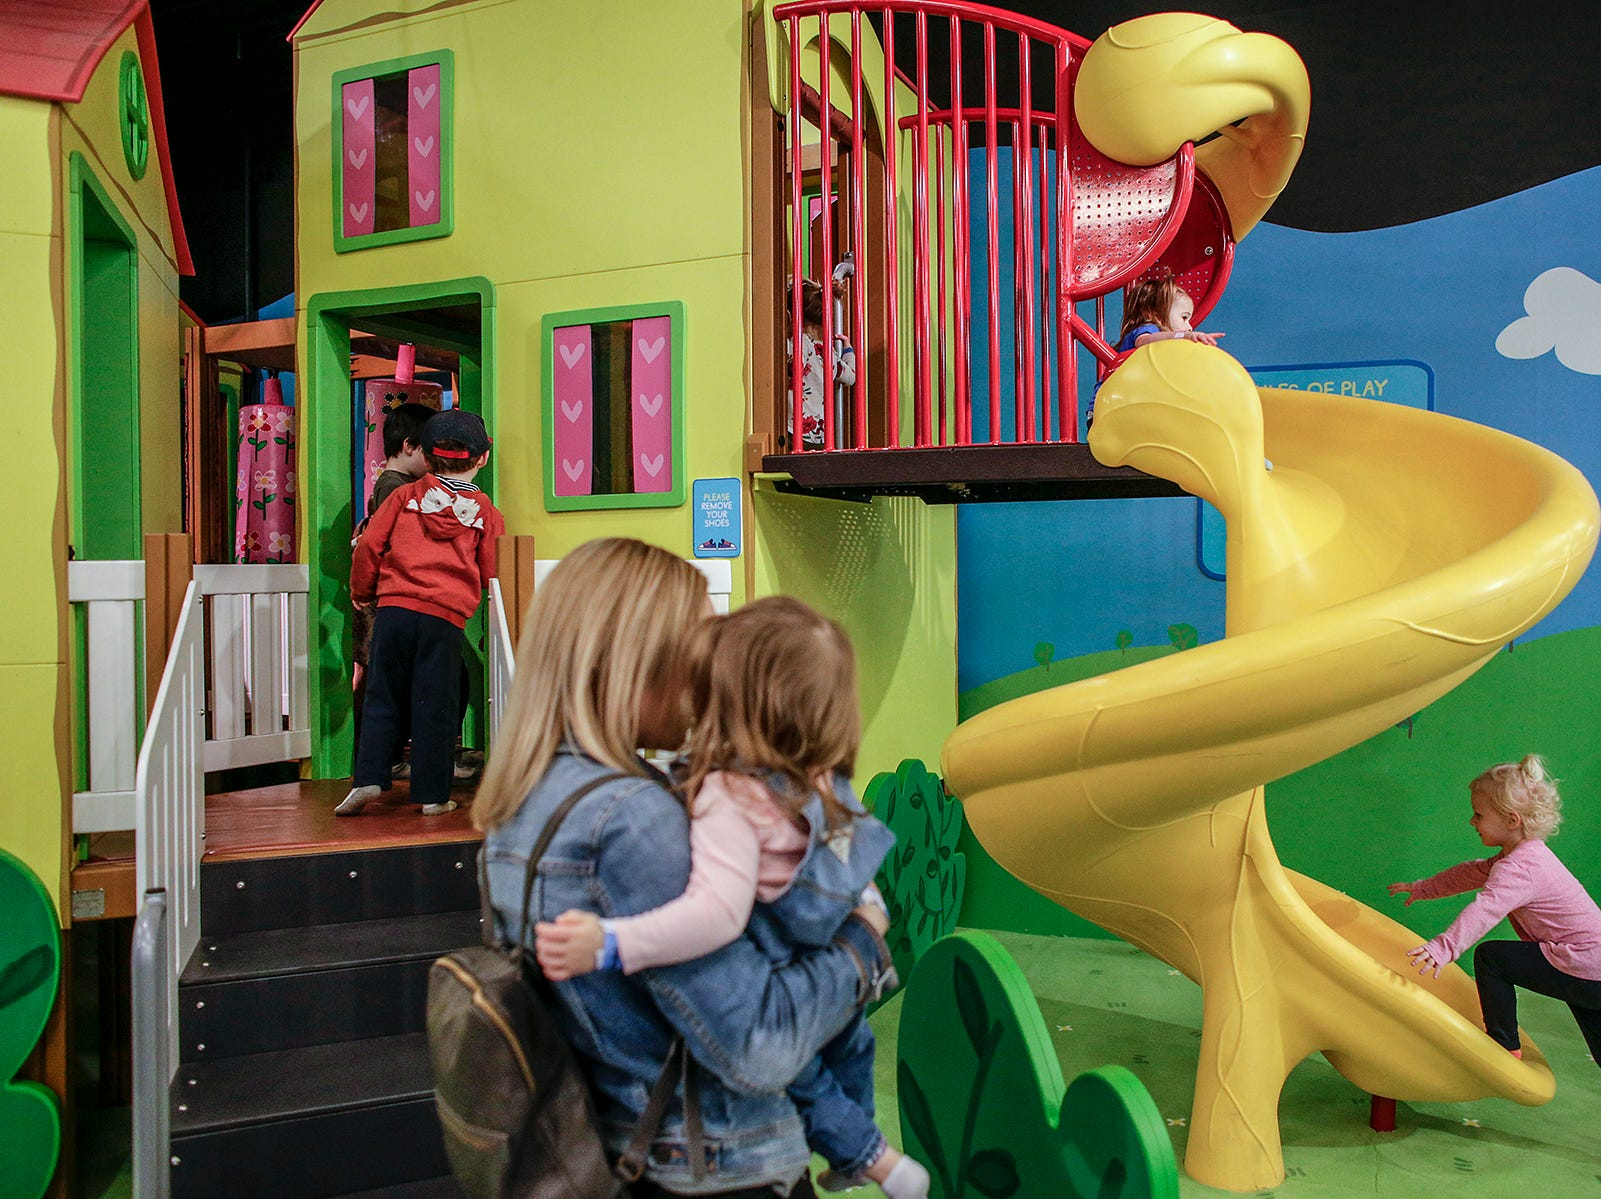 Children explore Peppa Pig's Treehouse play area during a media preview at Peppa Pig's World of Play attraction at Great Lakes Crossing in Auburn Hills, Mich. photographed on Friday, March 29, 2019.